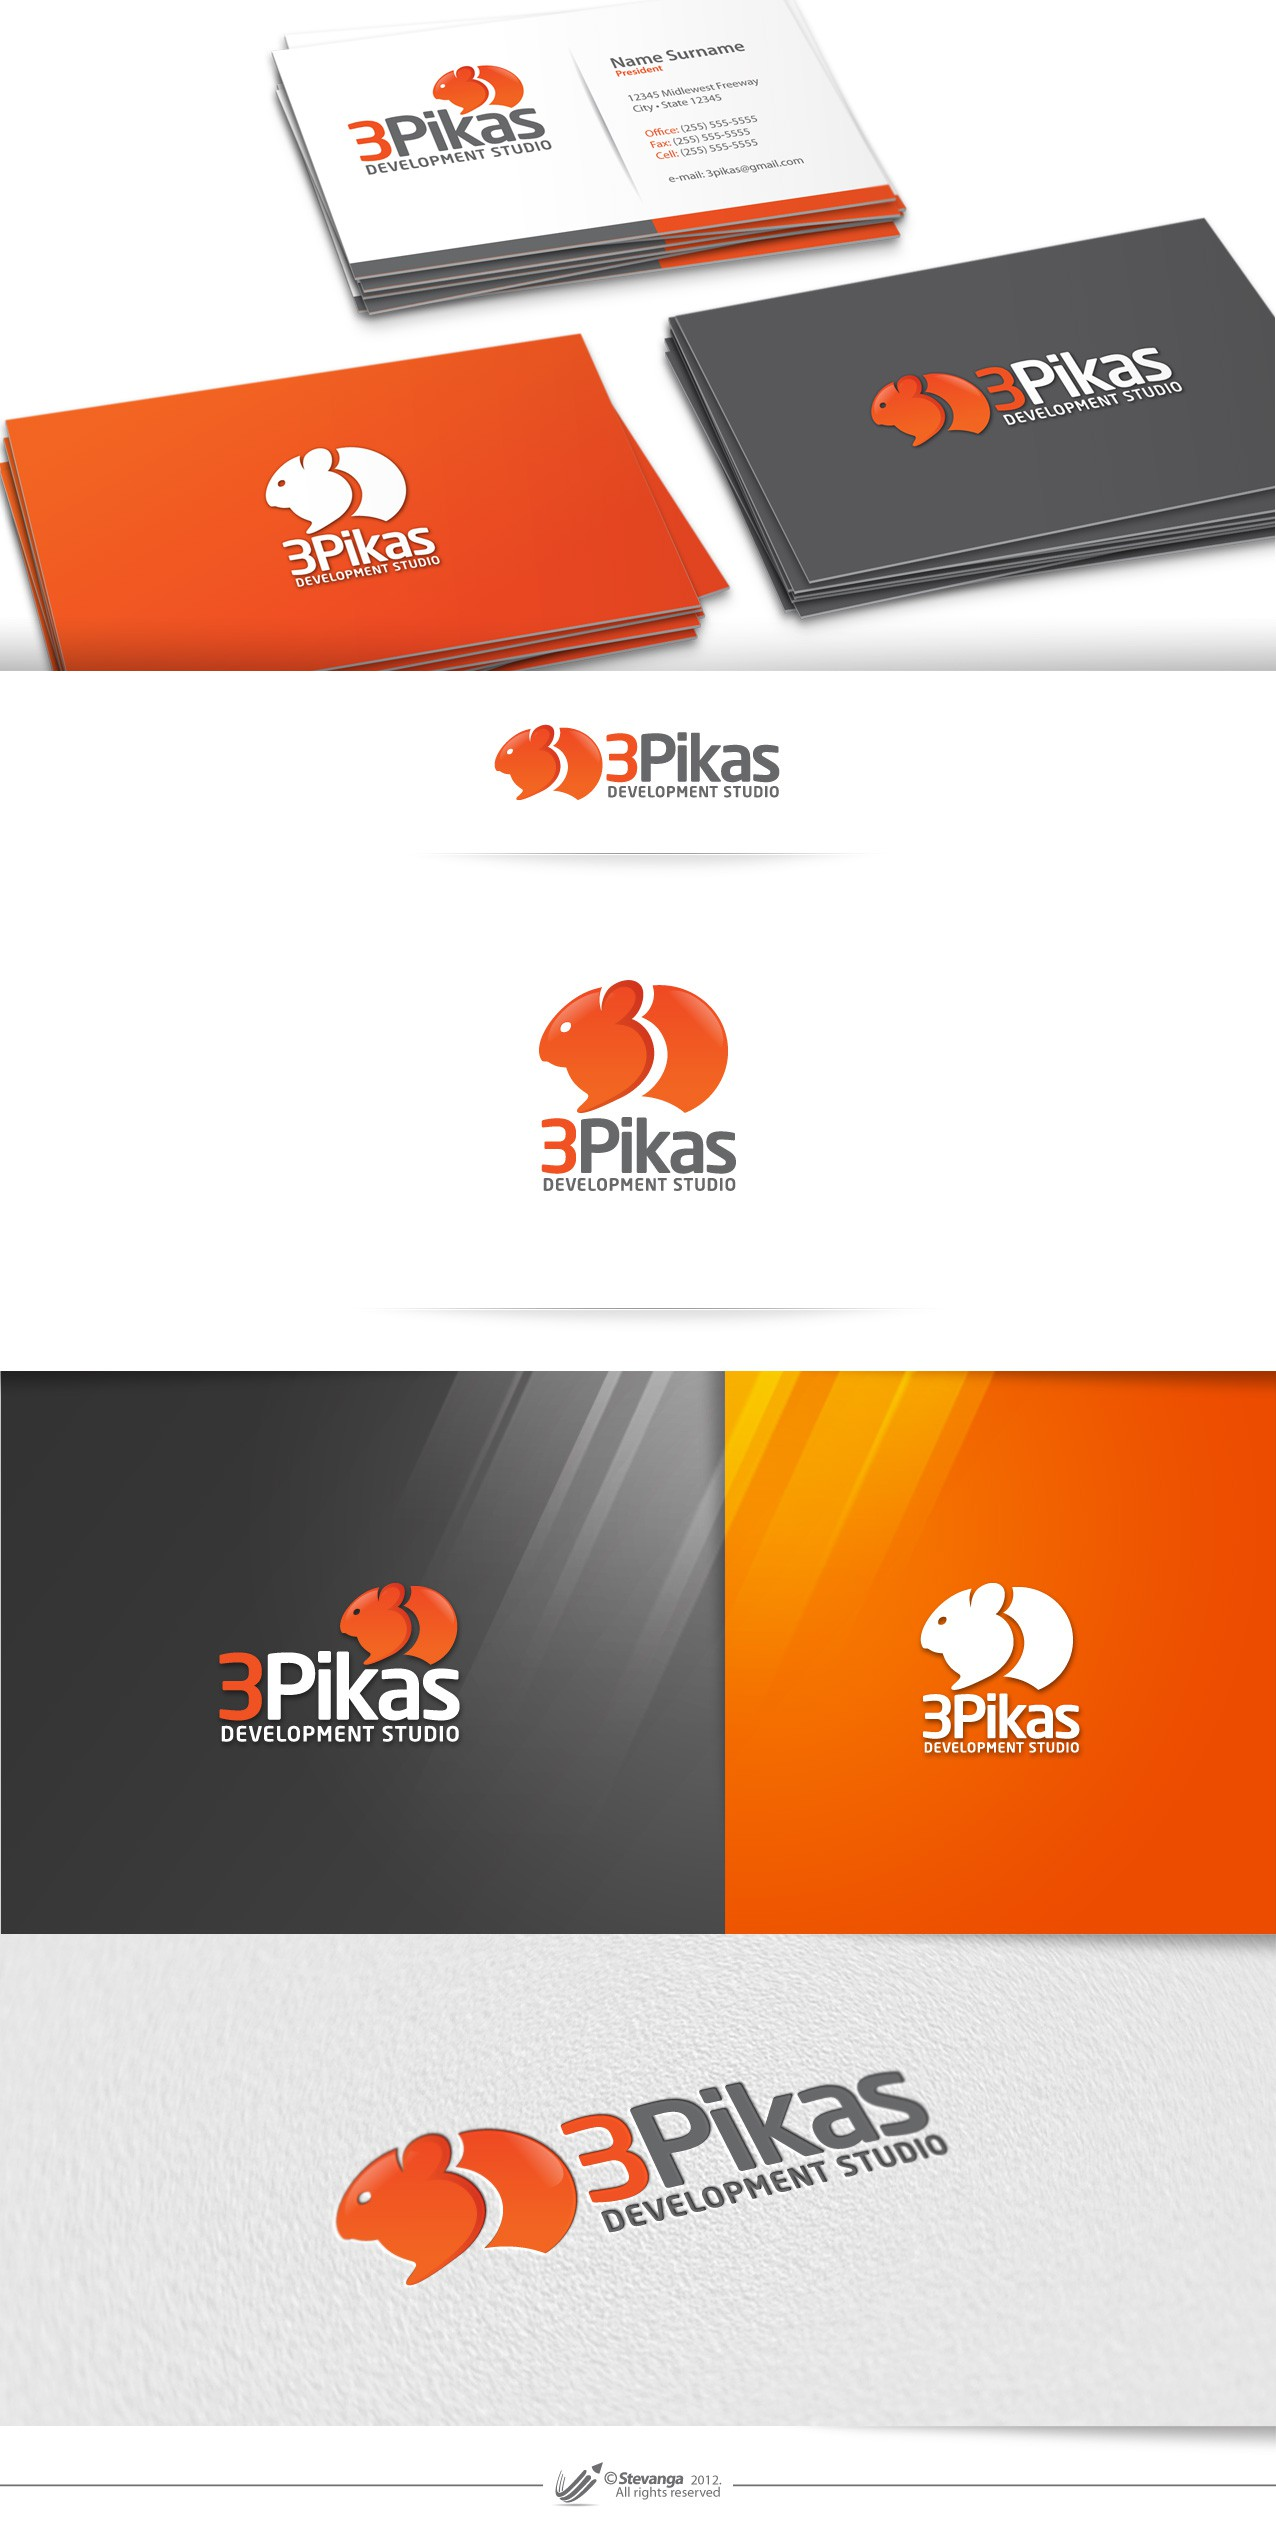 New logo and business card wanted for 3Pikas Development Studio